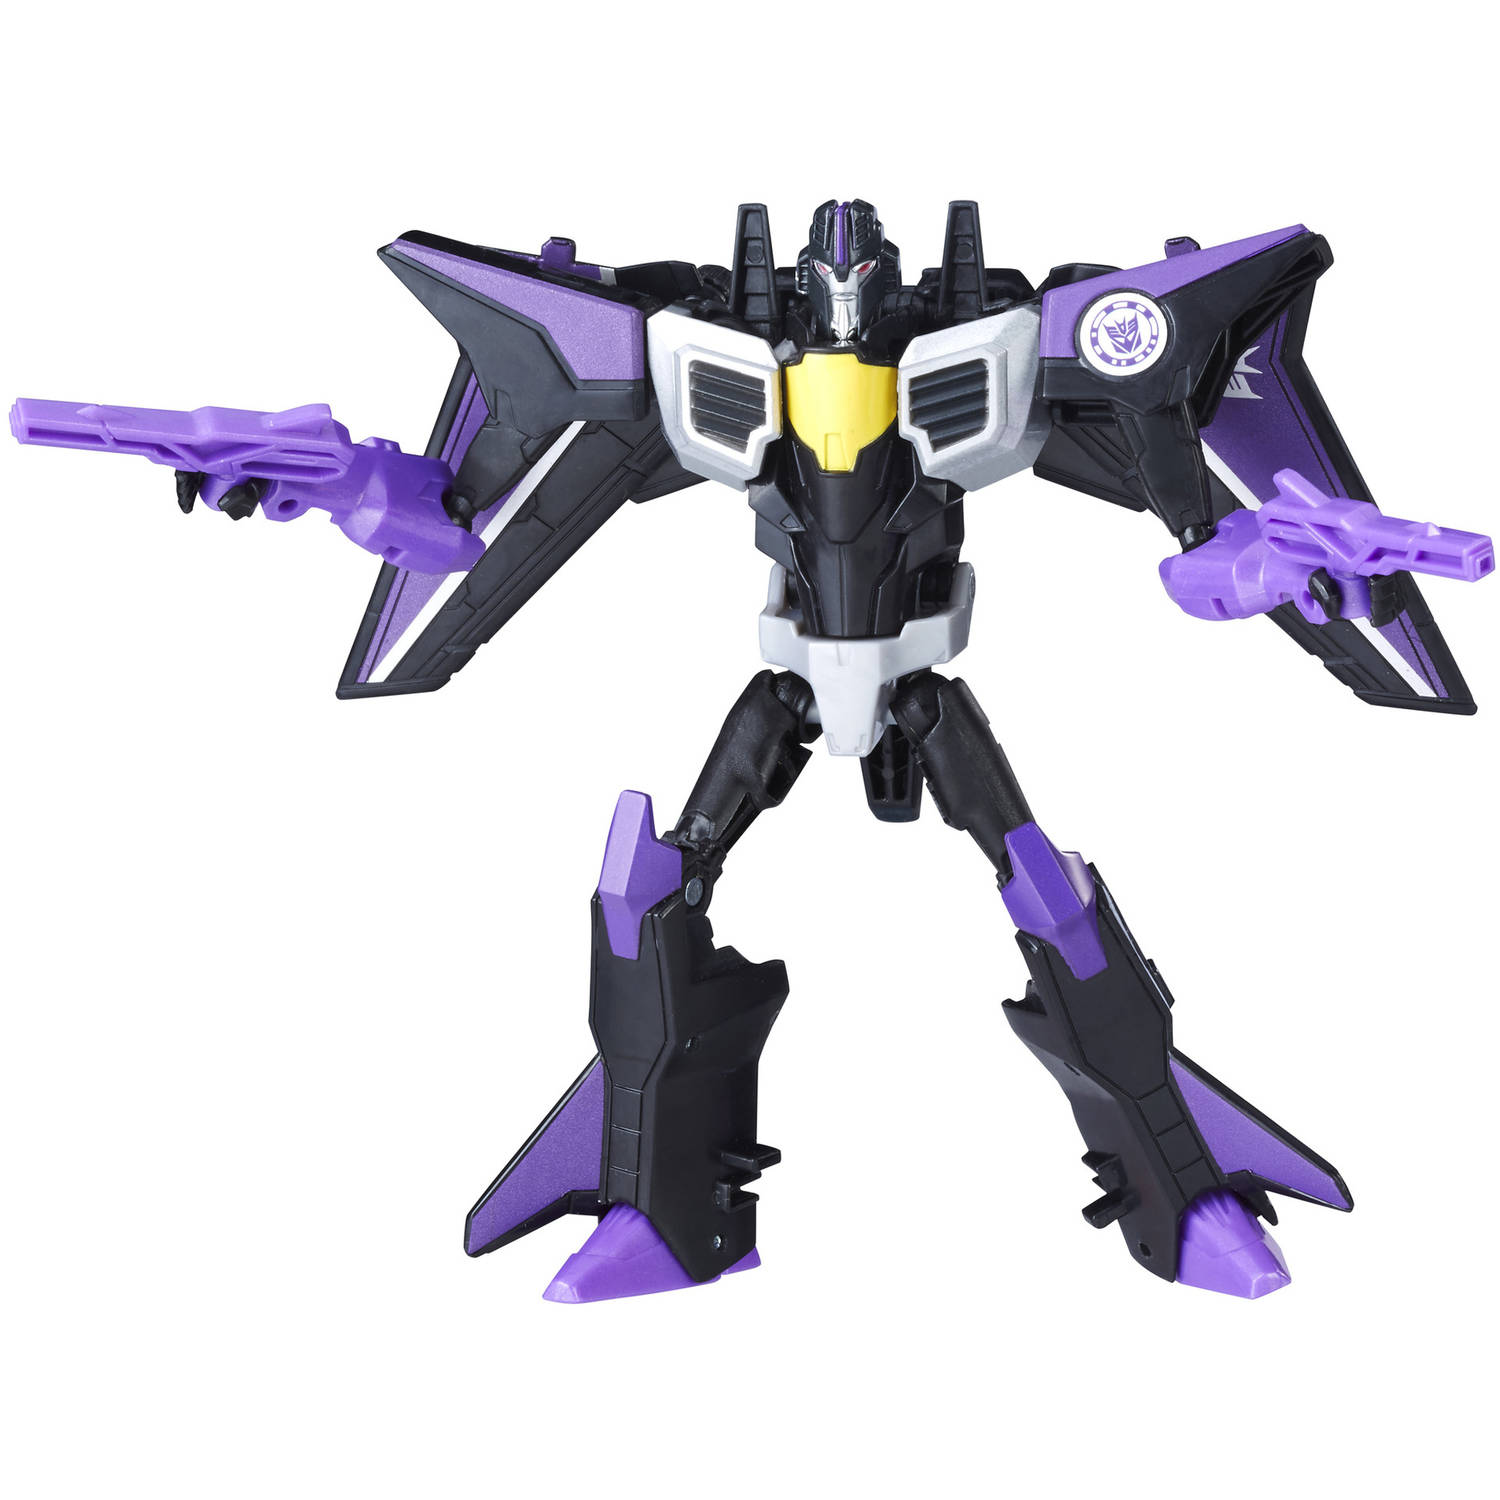 Transformers Robots in Disguise Warrior Class Skywarp Figure